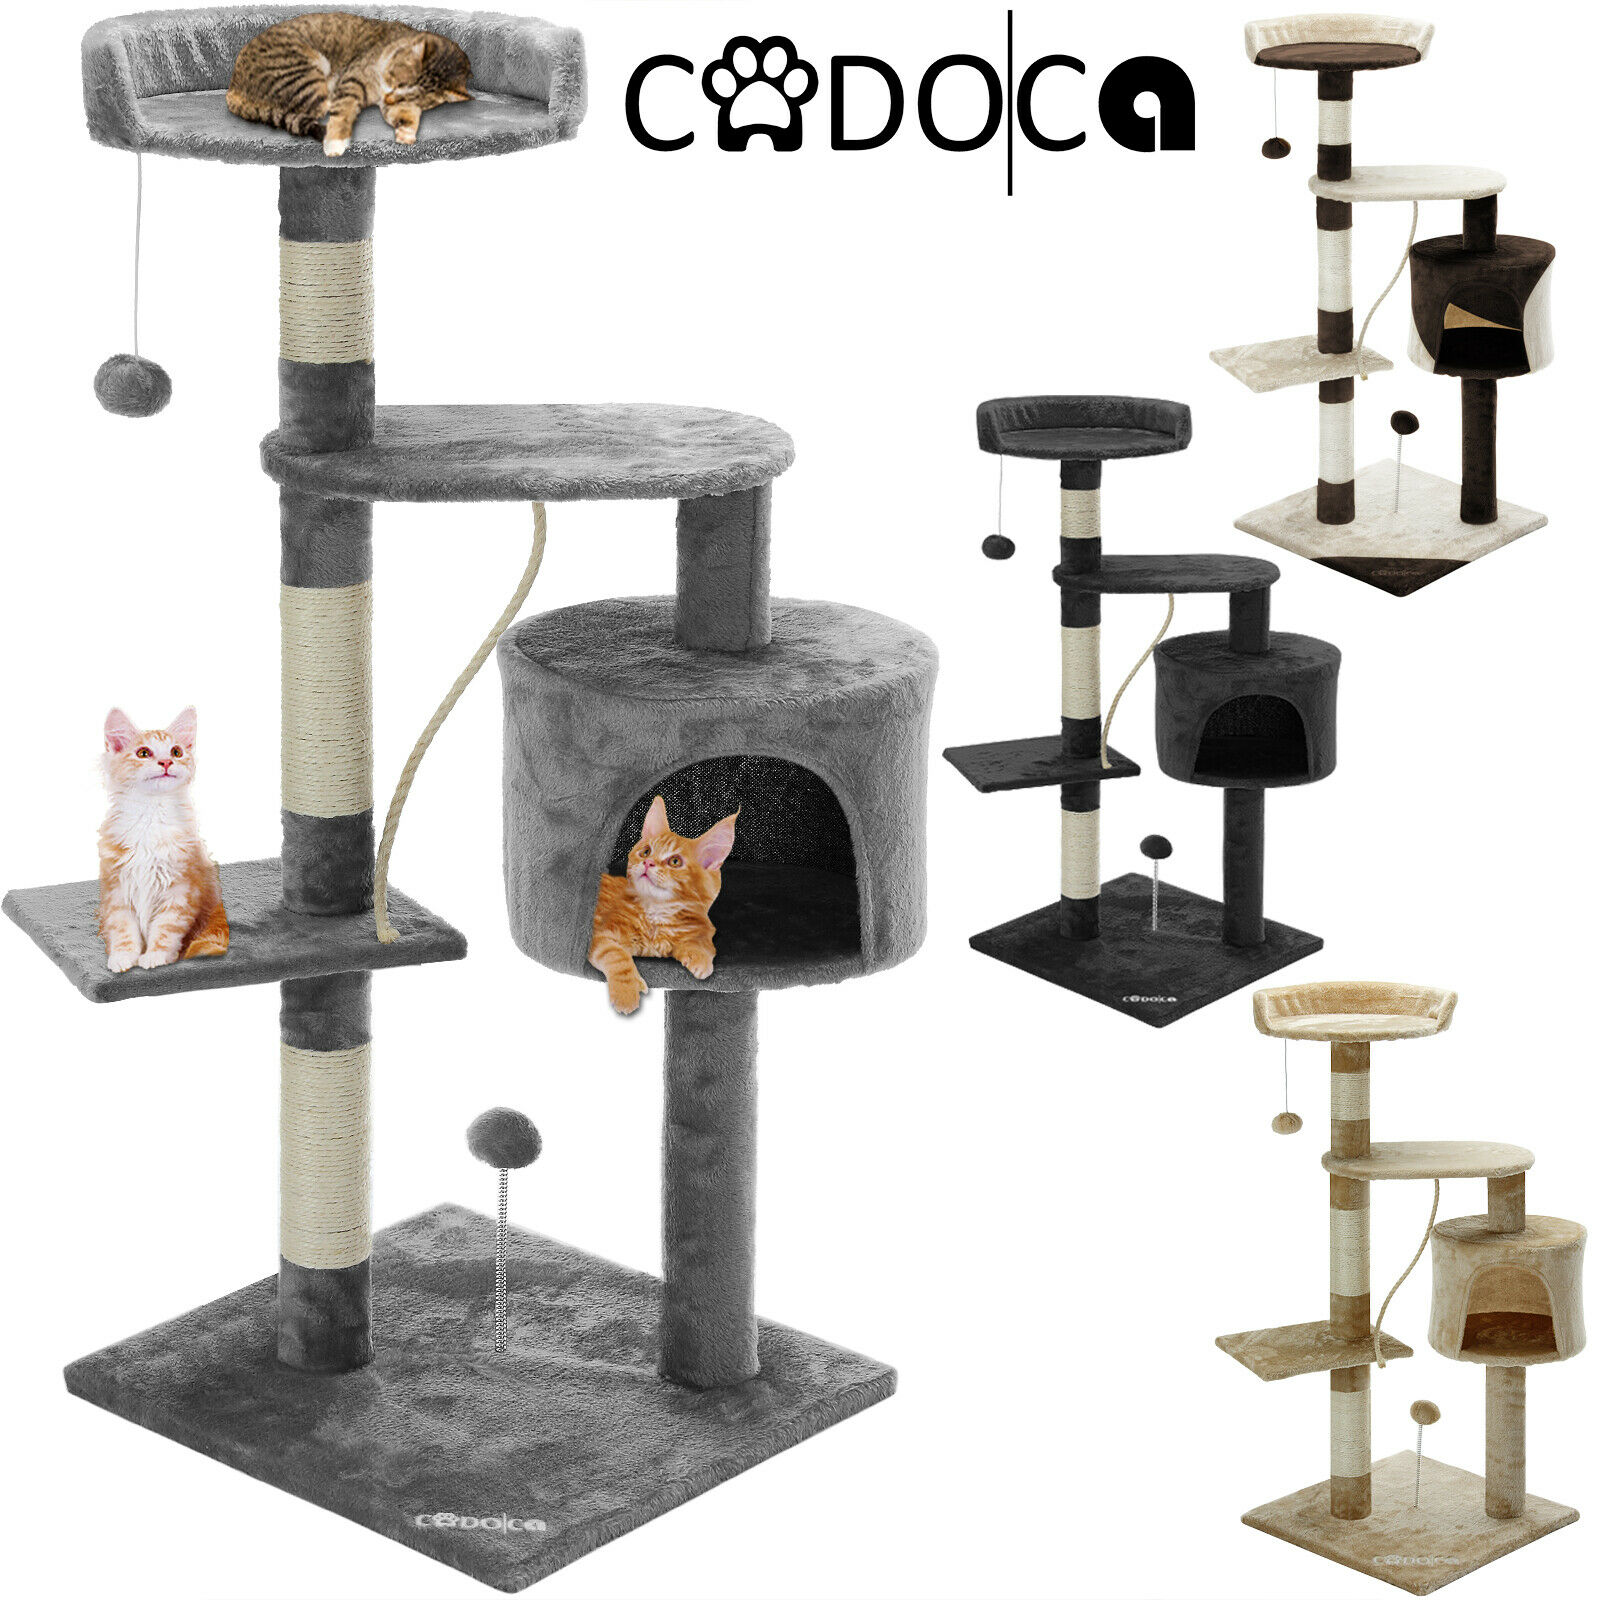 cadoca kratzbaum katzenkratzbaum katzenbaum kletterbaum f r katzen sisal eur 23 49 picclick at. Black Bedroom Furniture Sets. Home Design Ideas